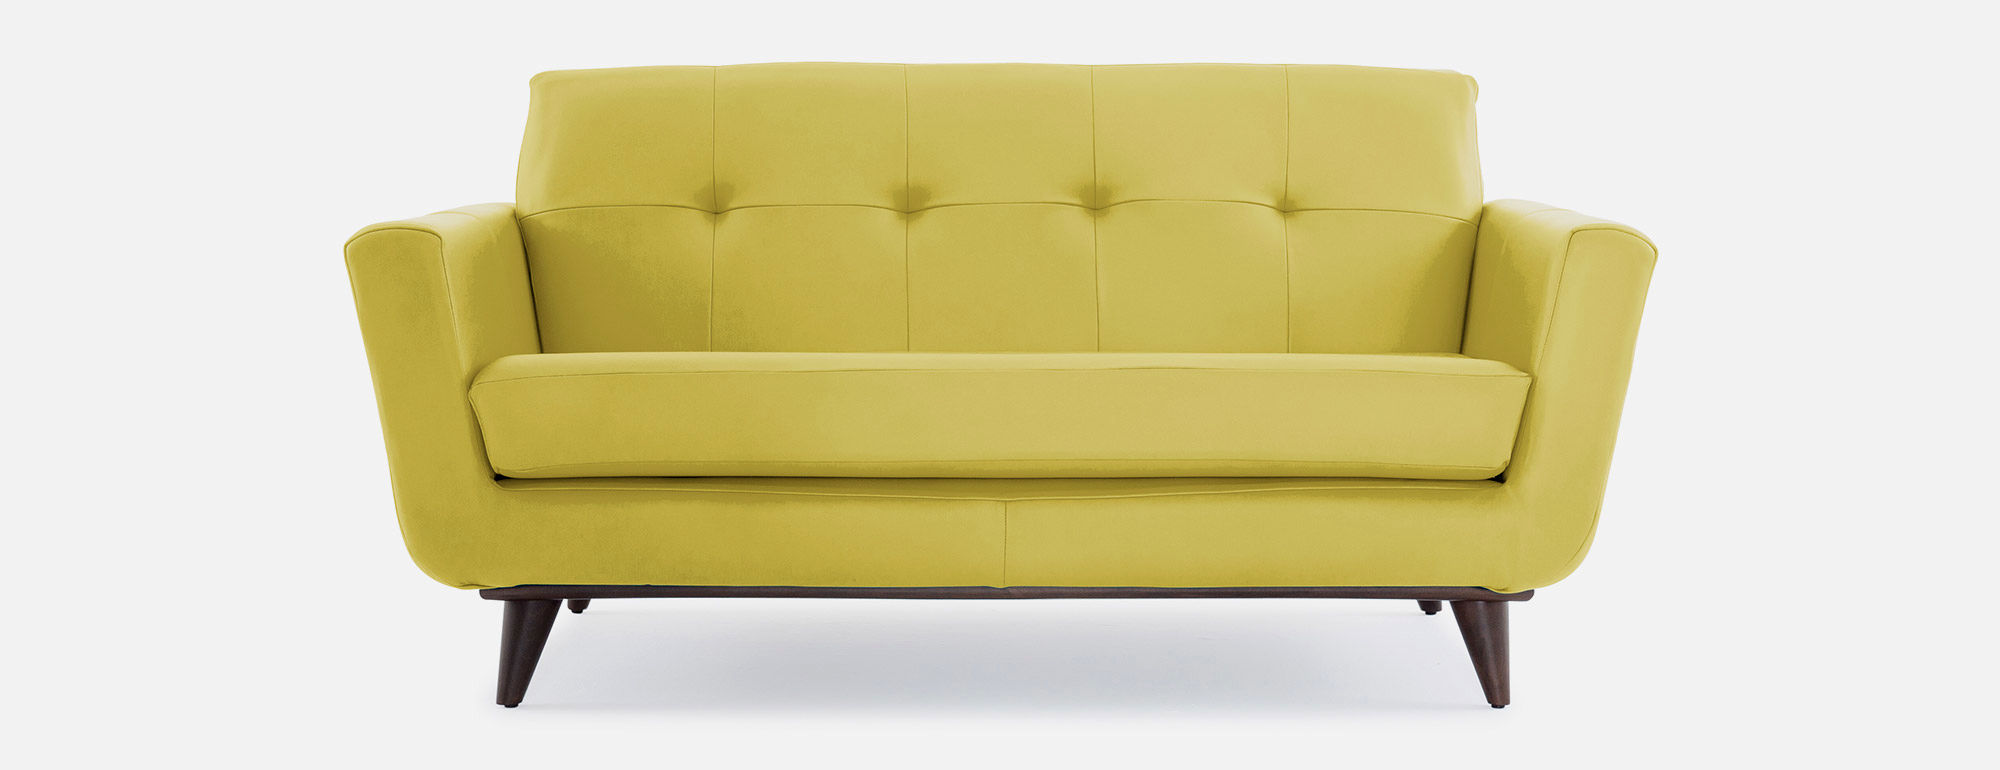 sensational crate and barrel leather sofa image-Stunning Crate and Barrel Leather sofa Picture